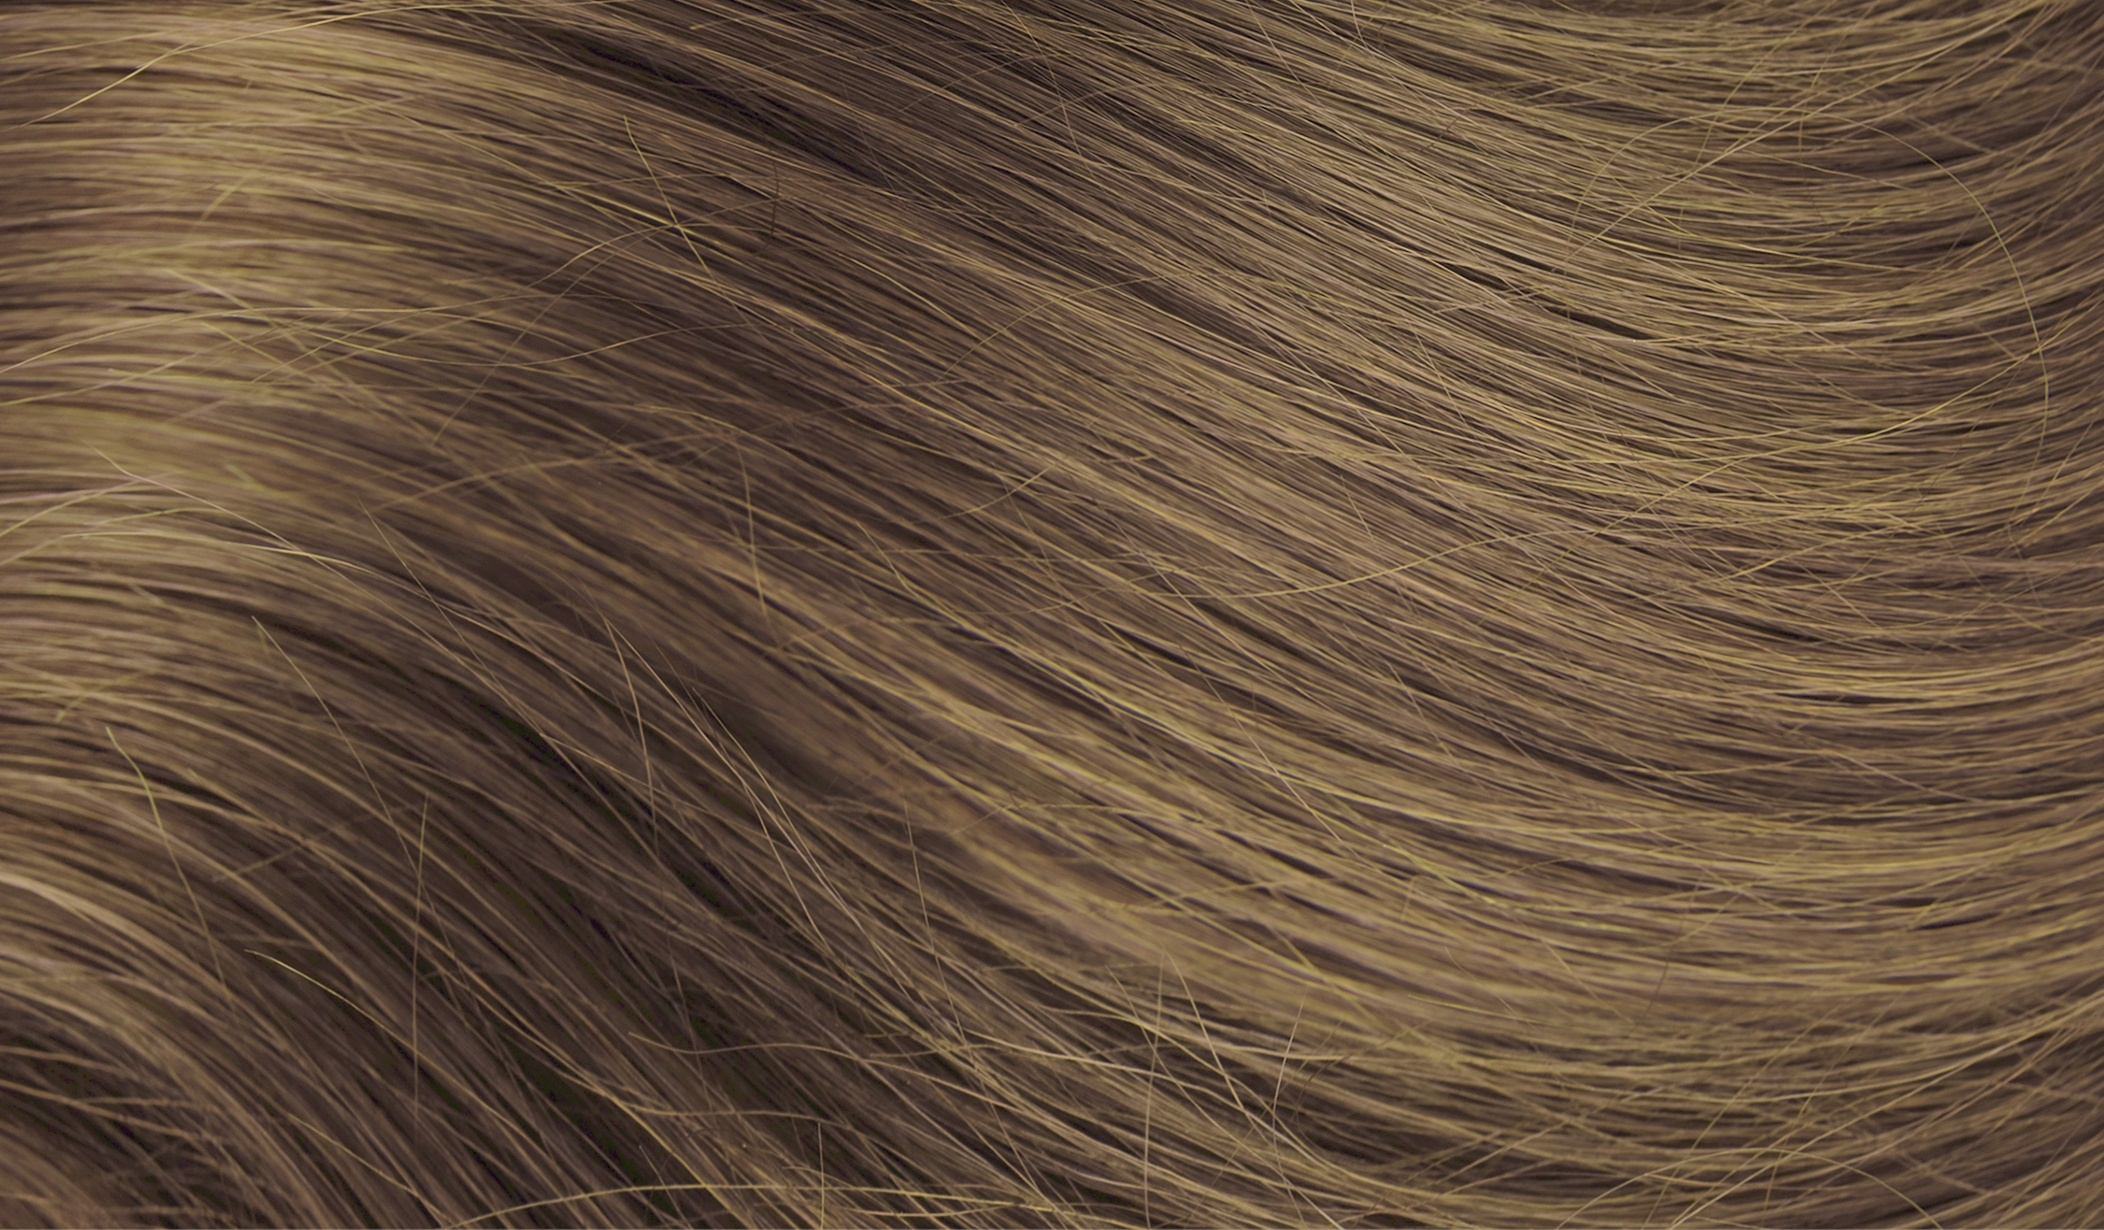 Formulating Color For Textured Hair Formulating Color For